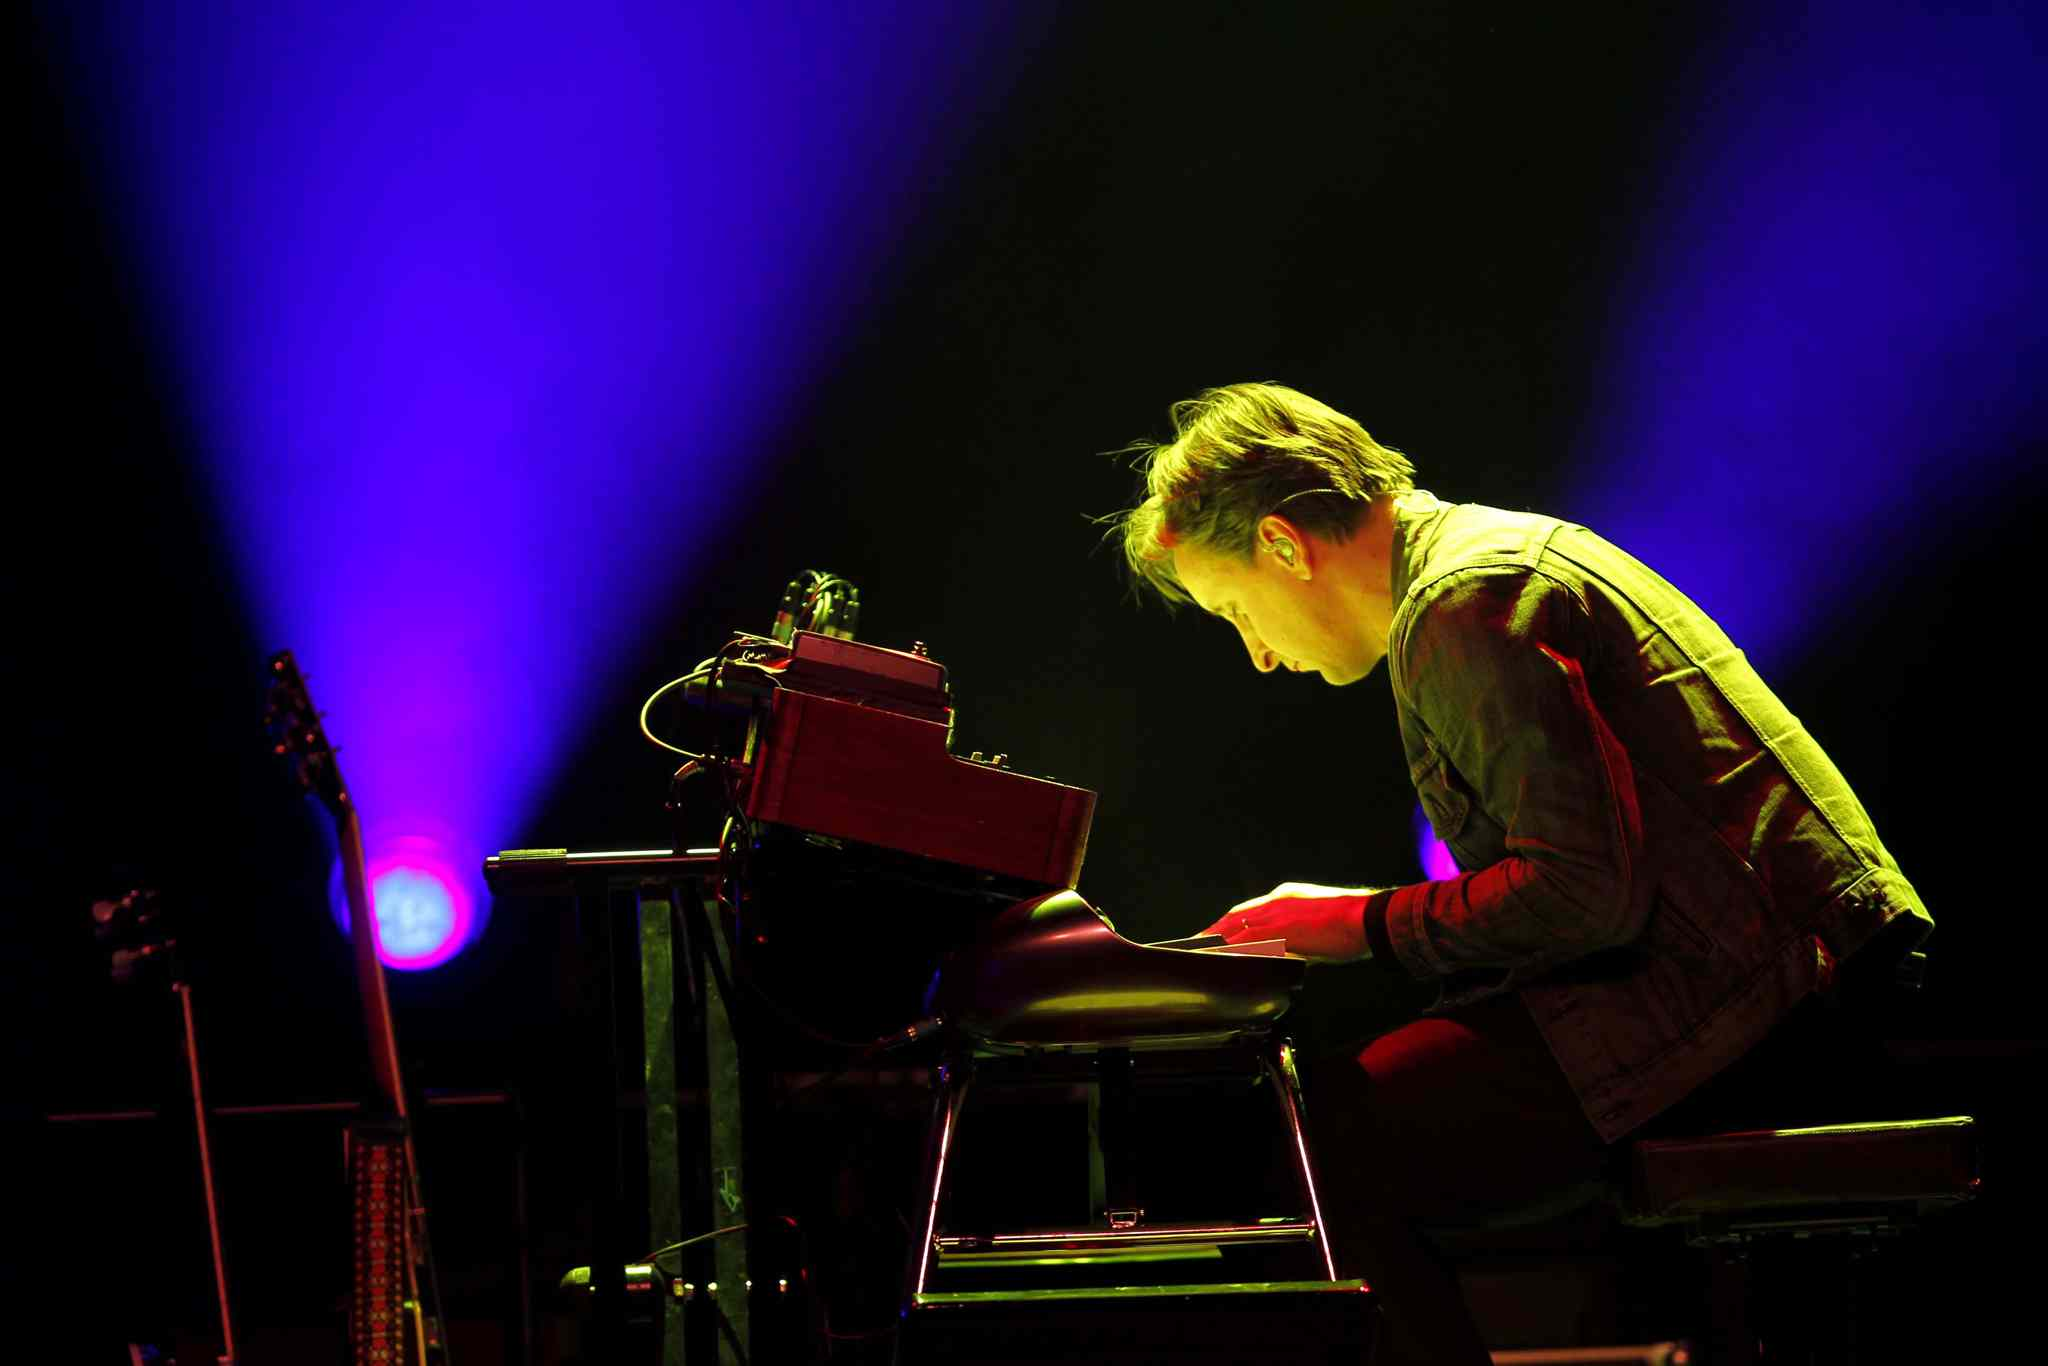 Keyboard player Mike Boguski, a new addition to Blue Rodeo, performed a crowd-pleasing solo during the band's 1989 track Diamond Mine.